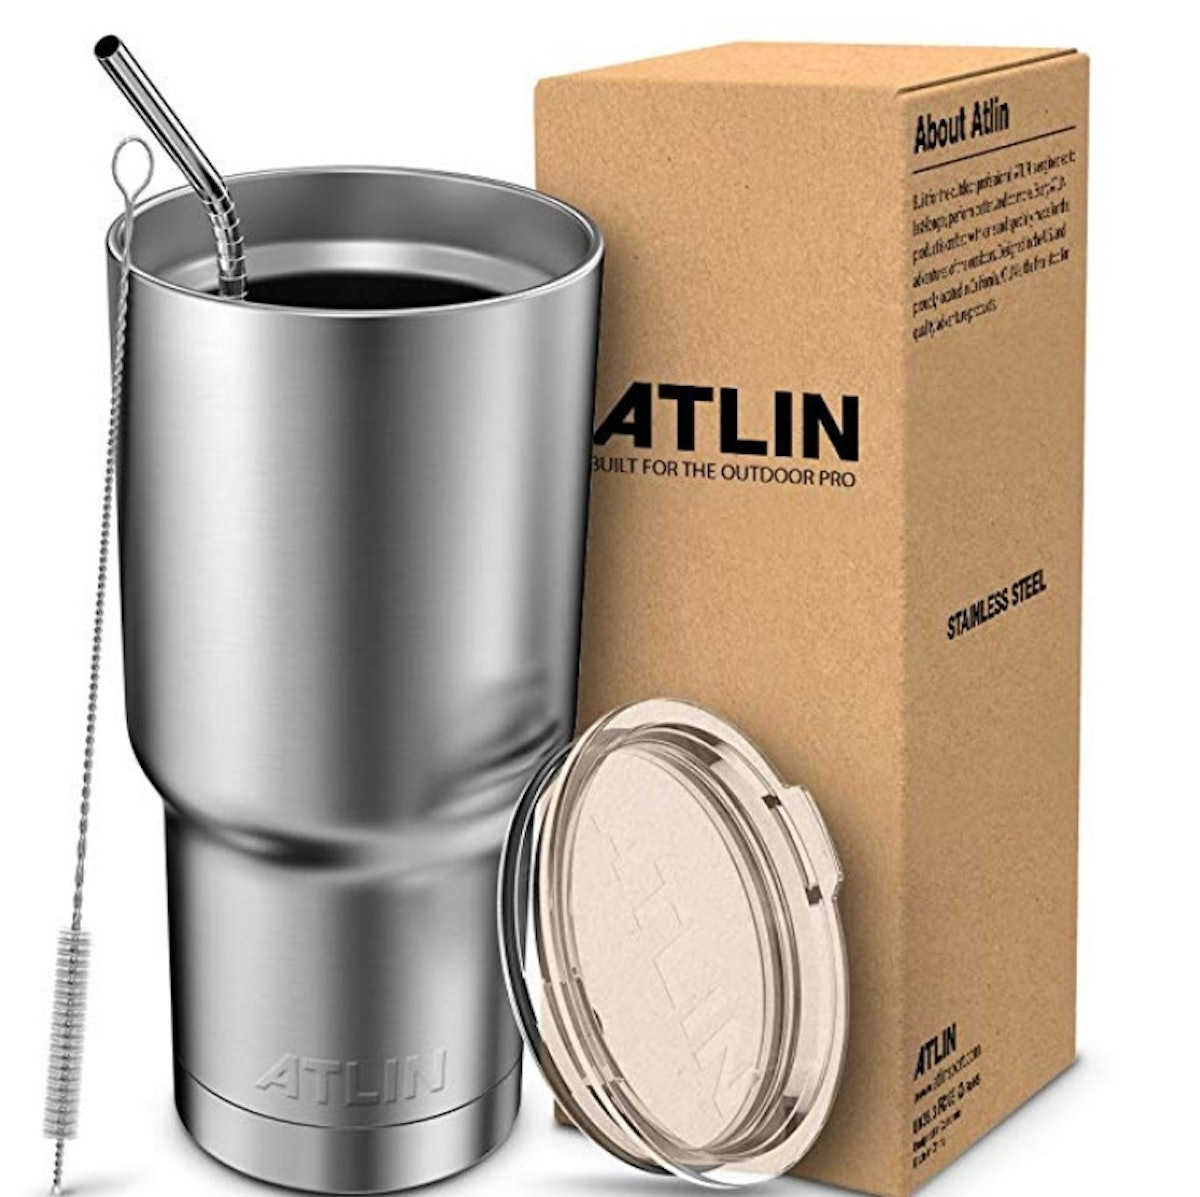 Atlin Stainless Steel Tumbler With Straw, 30 oz